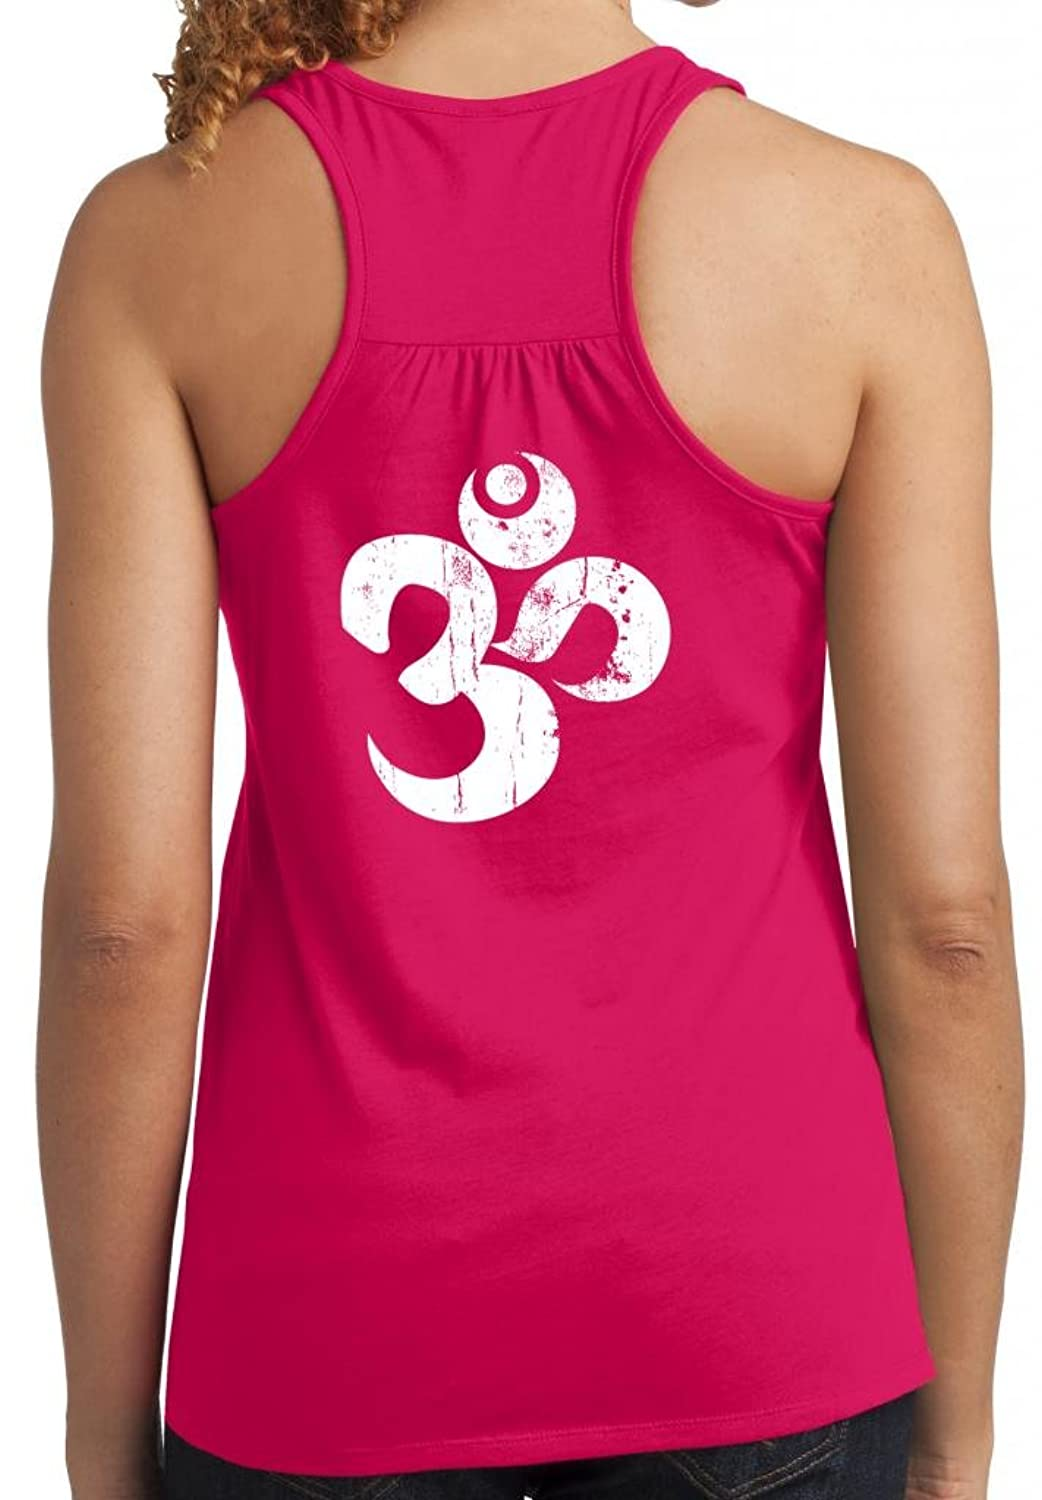 Yoga Clothing For You Ladies Distressed OM Racer Back Tank Top